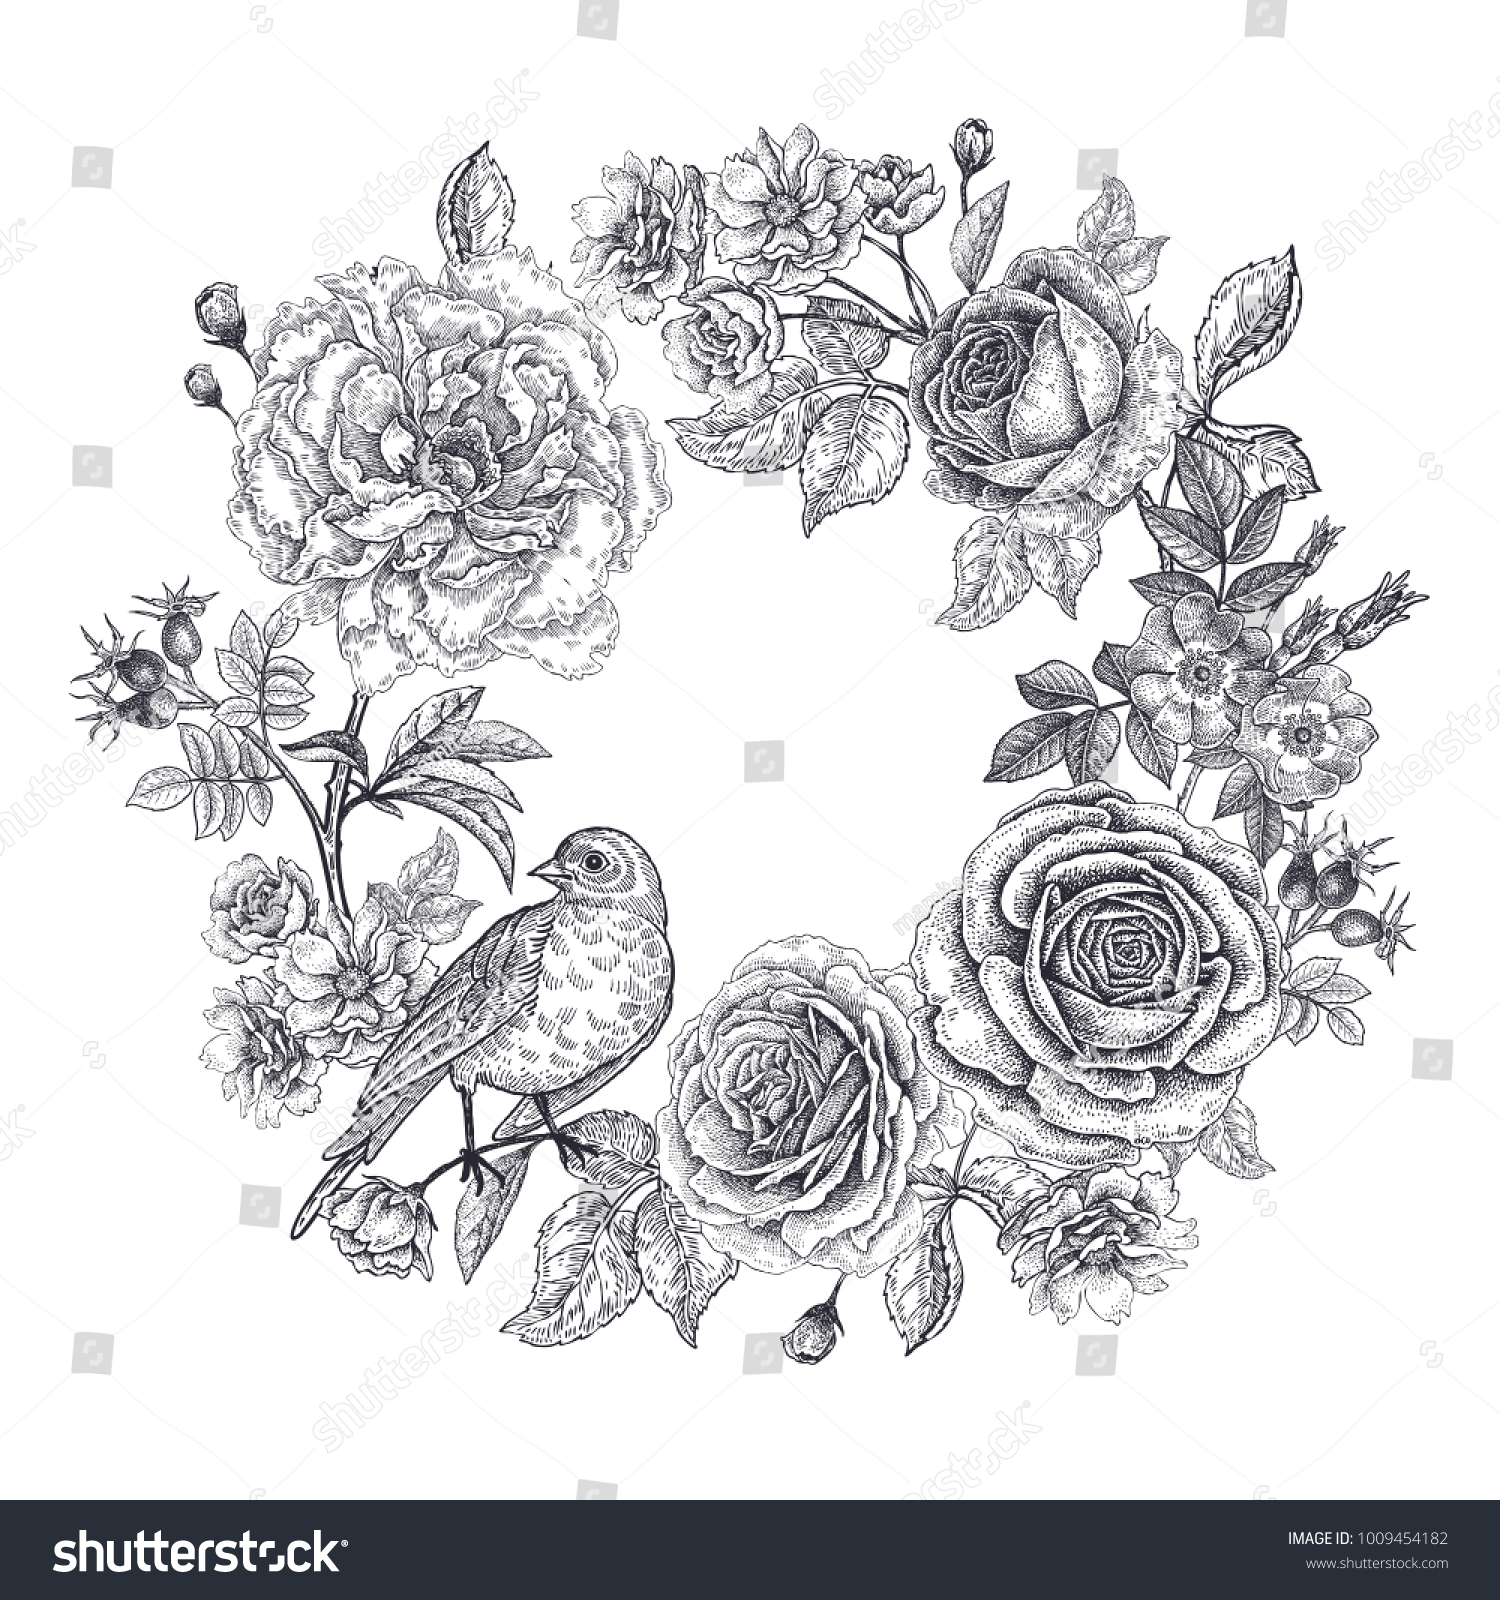 Vintage frame flowers bird print black stock vector royalty free vintage frame with flowers and a bird print black on a white background roses mightylinksfo